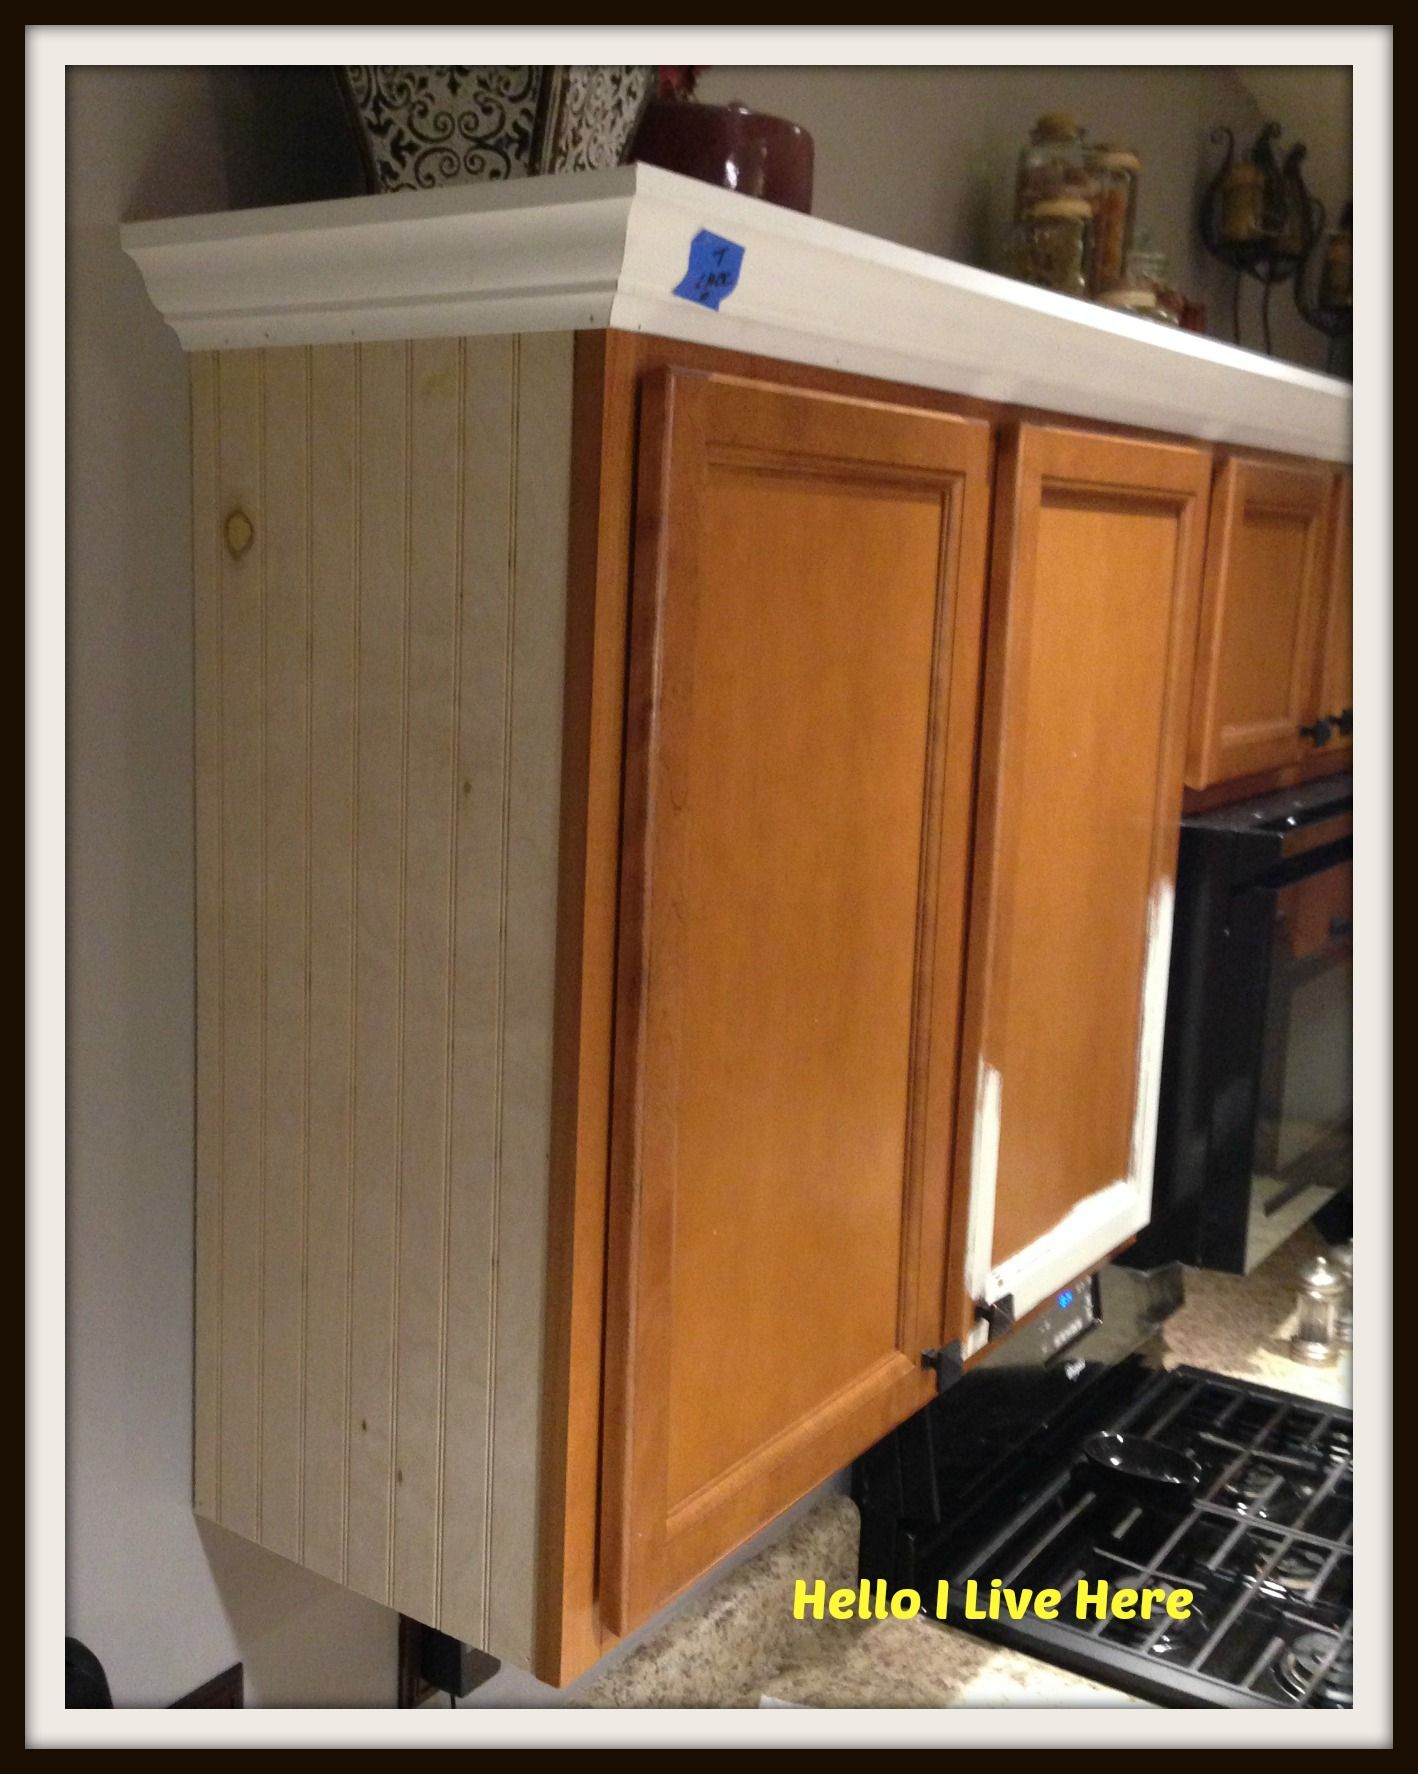 Kitchen Cabinet Makeover Install Crown Molding Http Helloilivehere Com Kitchen Cab Kitchen Cabinets Upgrade Kitchen Cabinets Trim Kitchen Cabinets Makeover